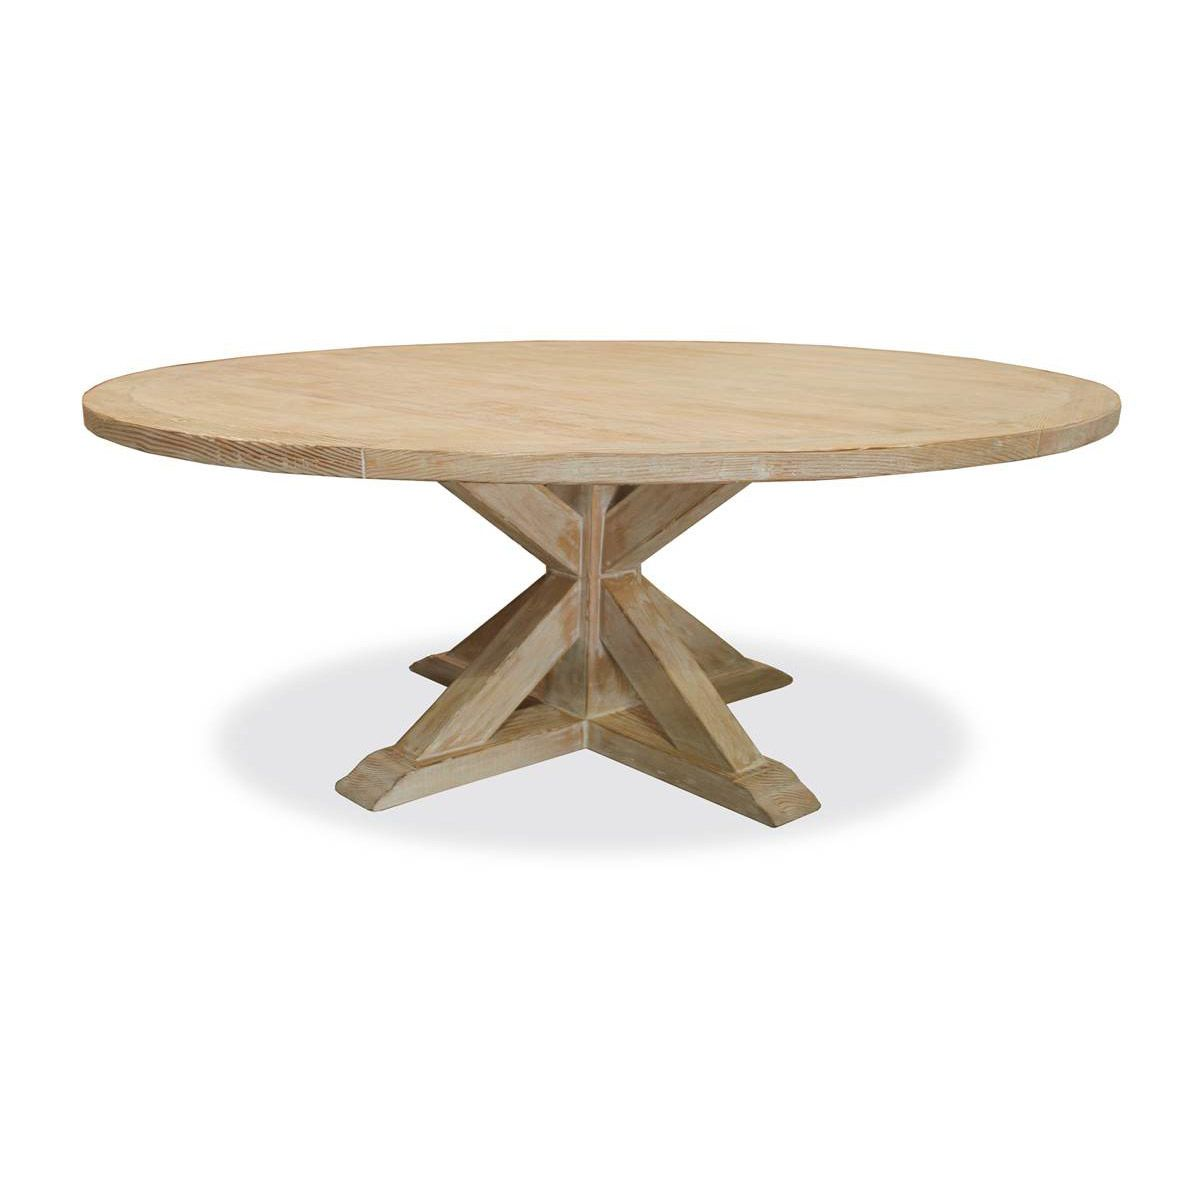 Treasure Reclaimed Wood Round Dining Table | Round dining table ...